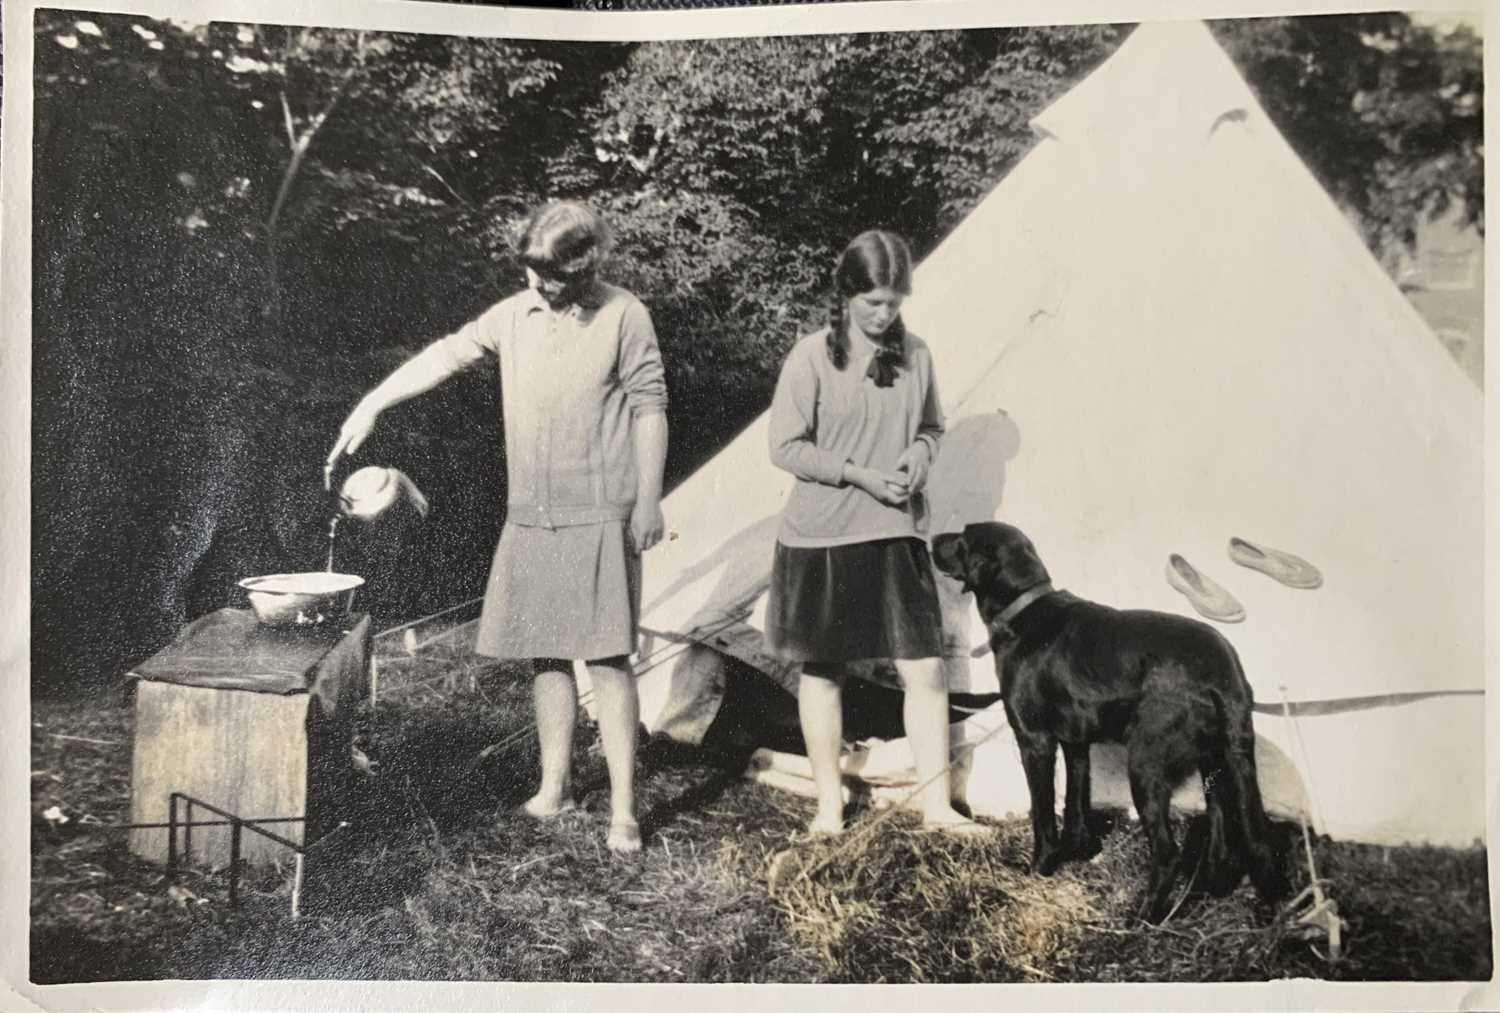 Joan Manning Sanders 1913-2002 Her personal archive. A fascinating collection of photographs and - Image 6 of 32